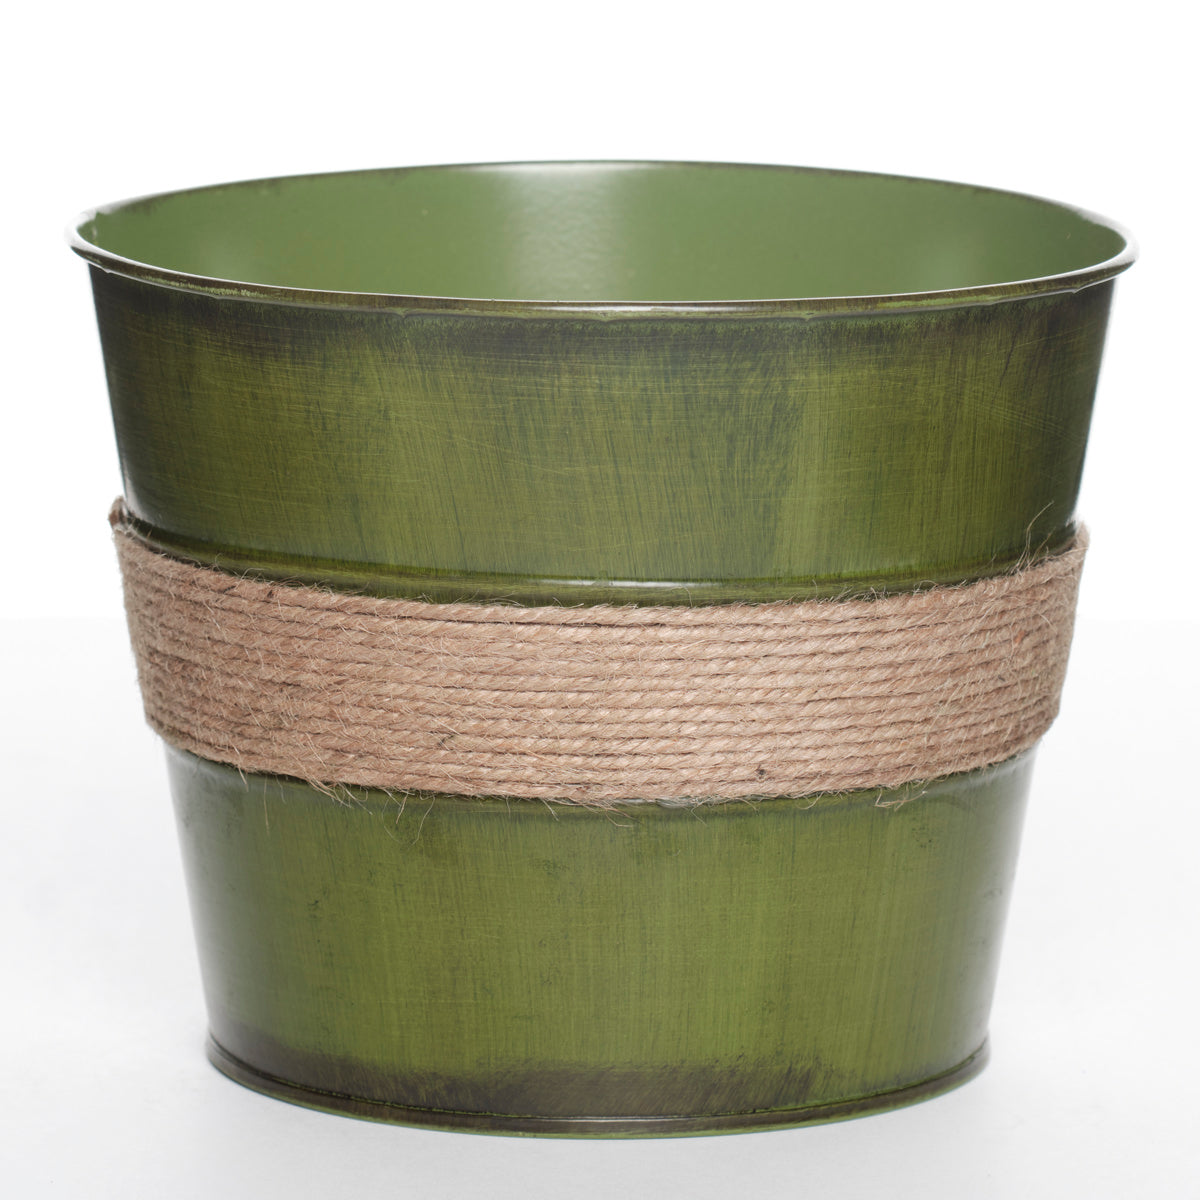 Flower Pot with Rope Accent